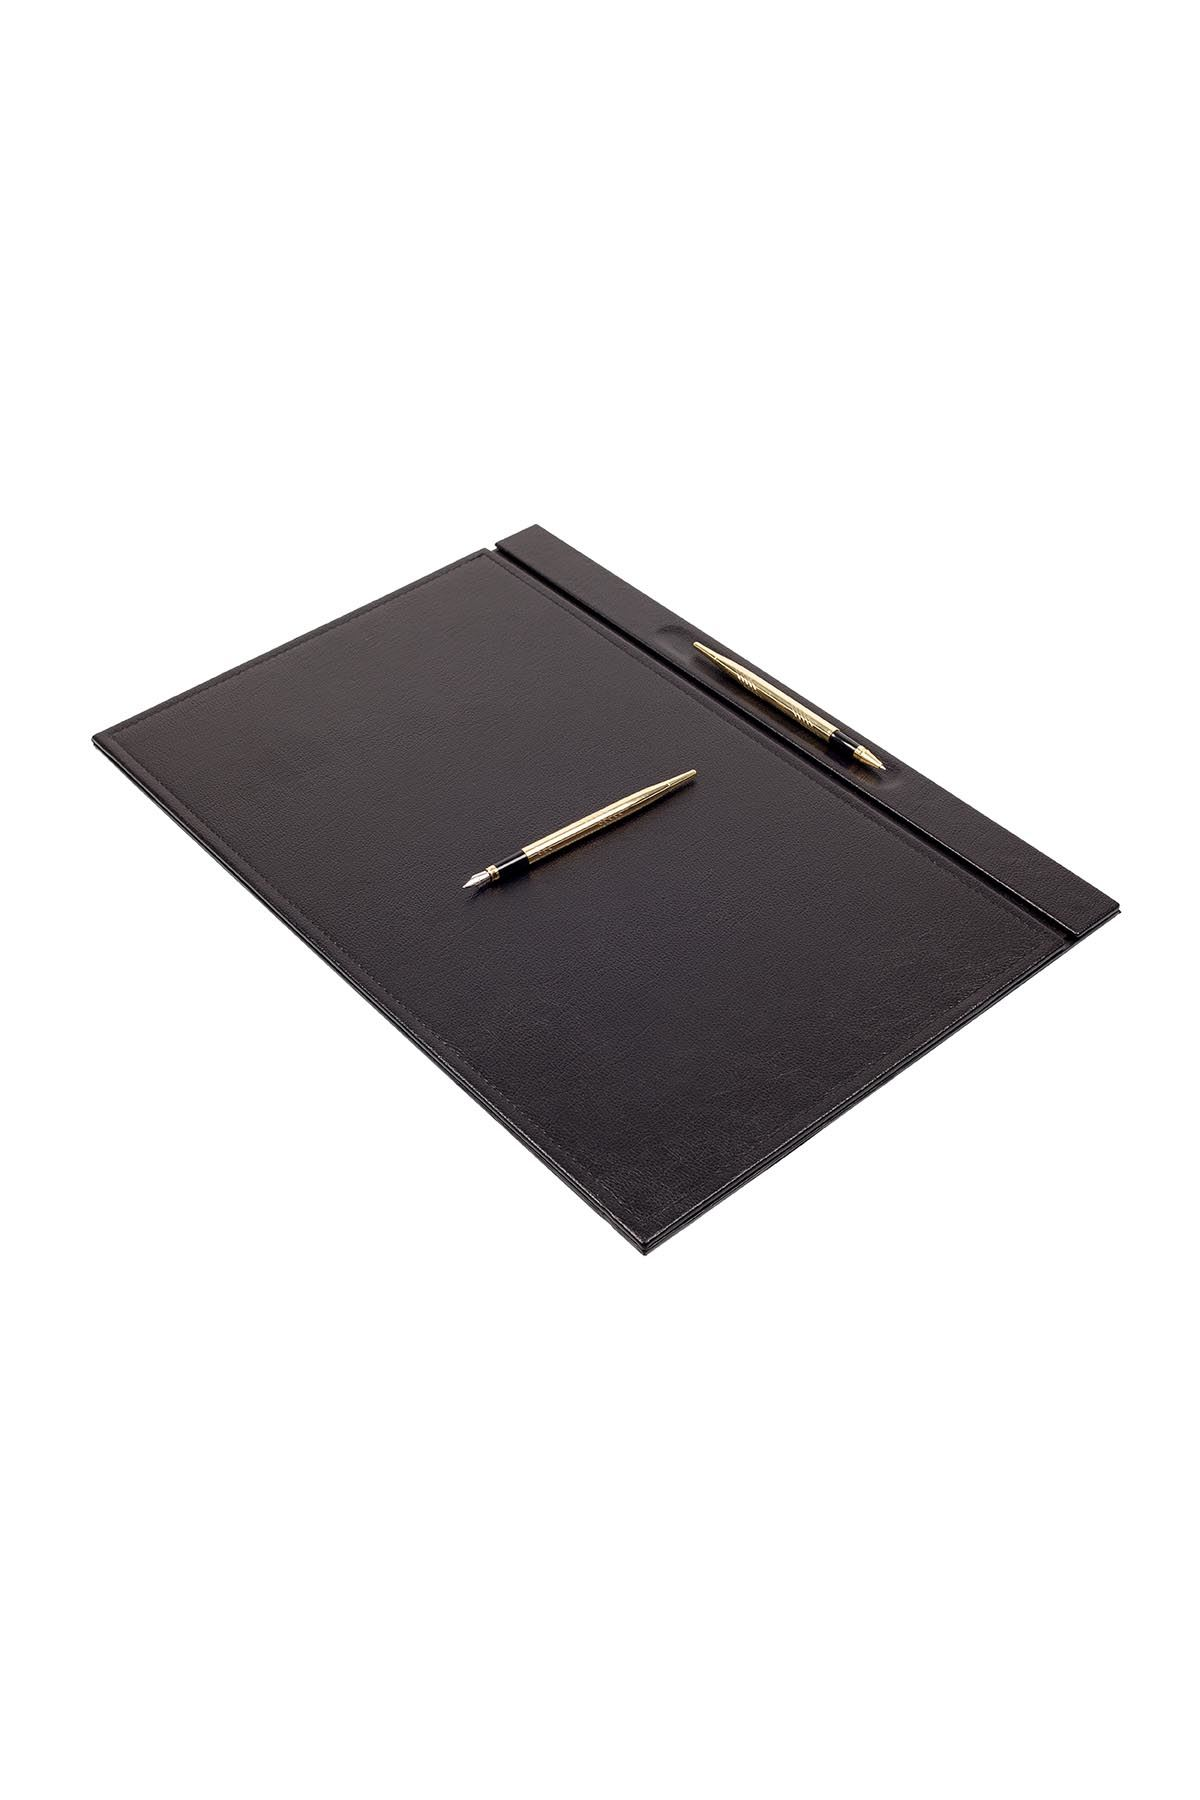 Leather Desk Set 8 Accessories Black